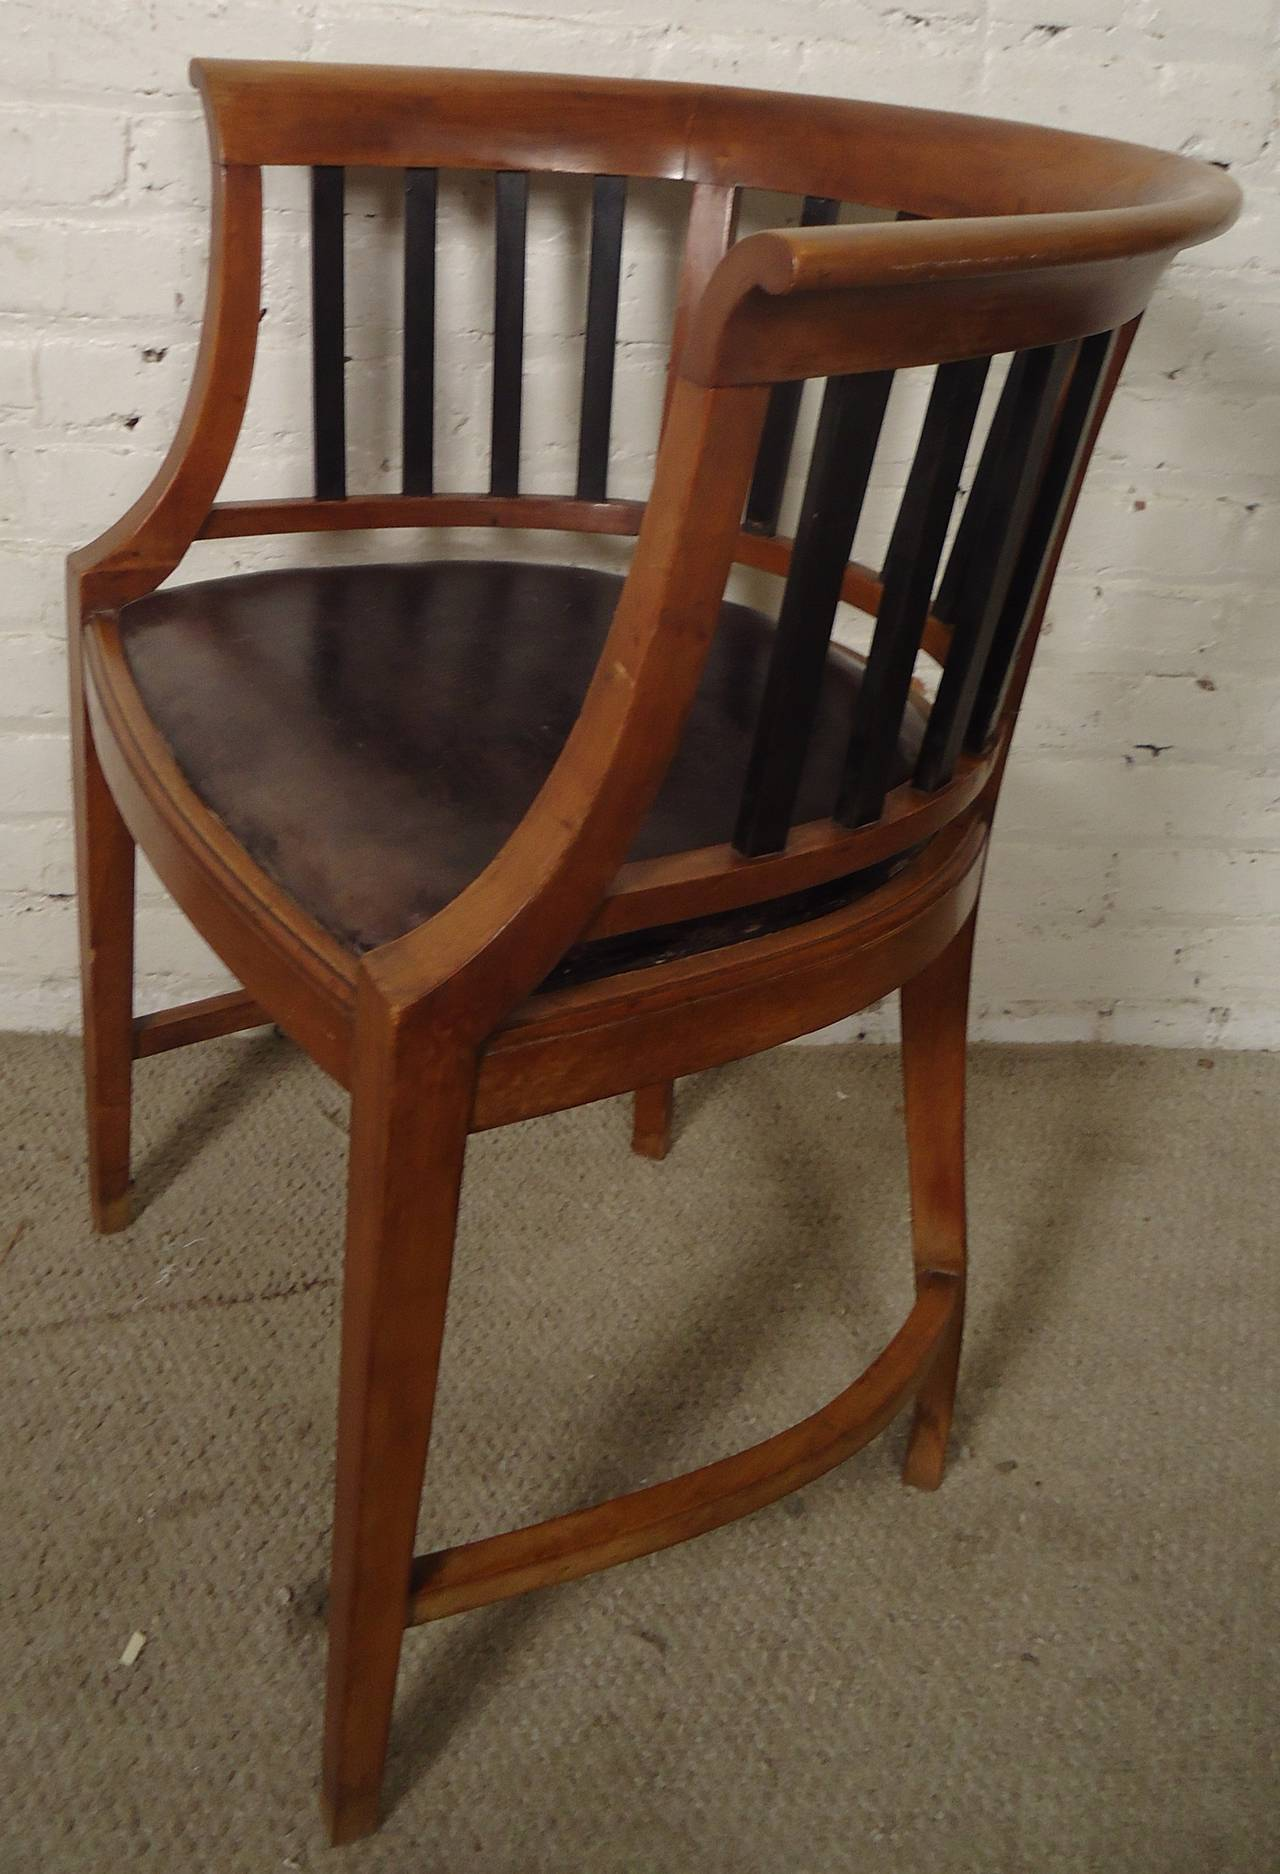 Antique Round Back Chairs